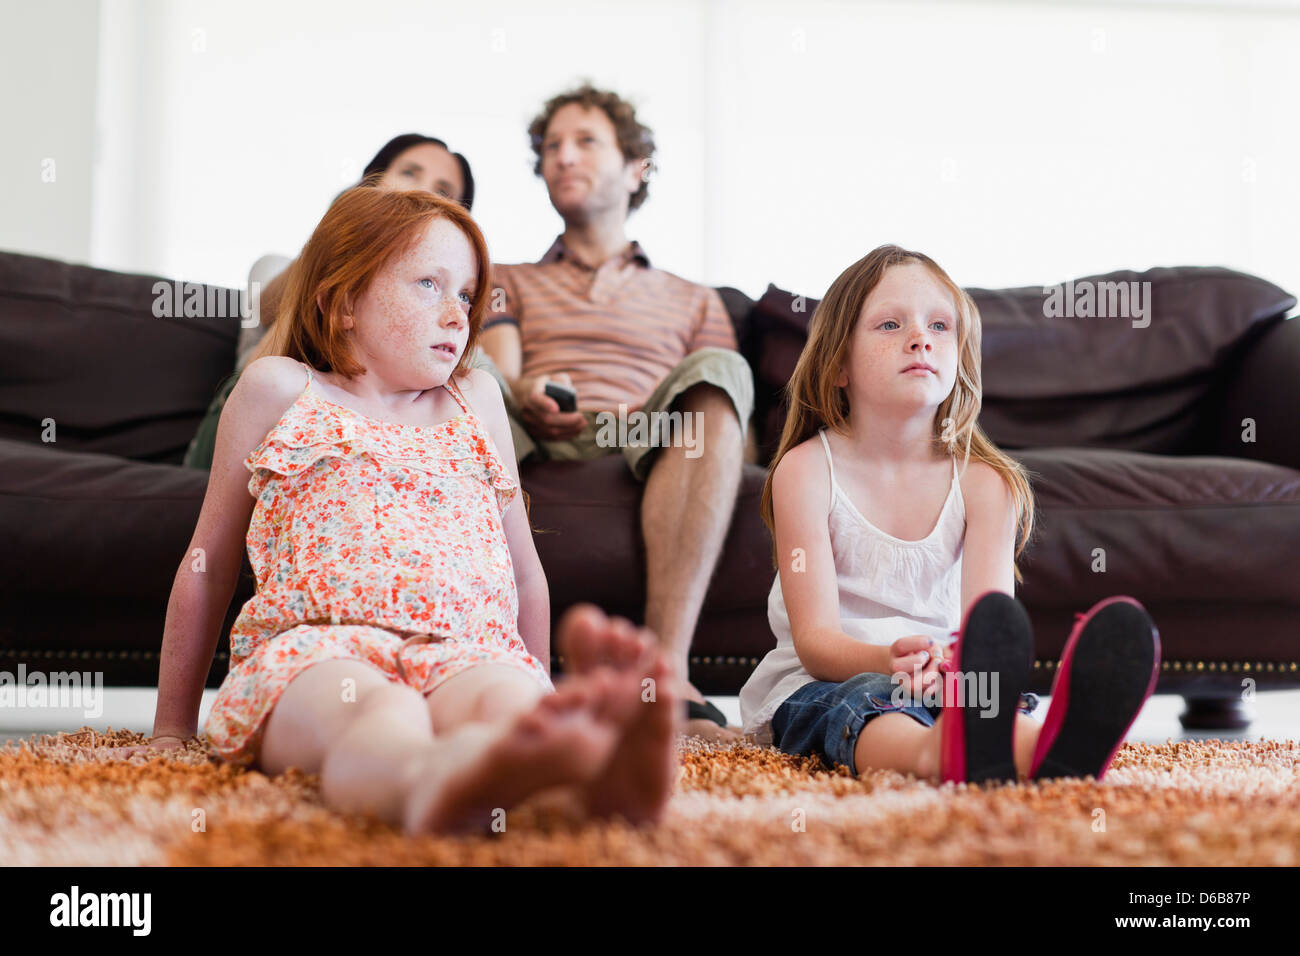 Family watching television together - Stock Image